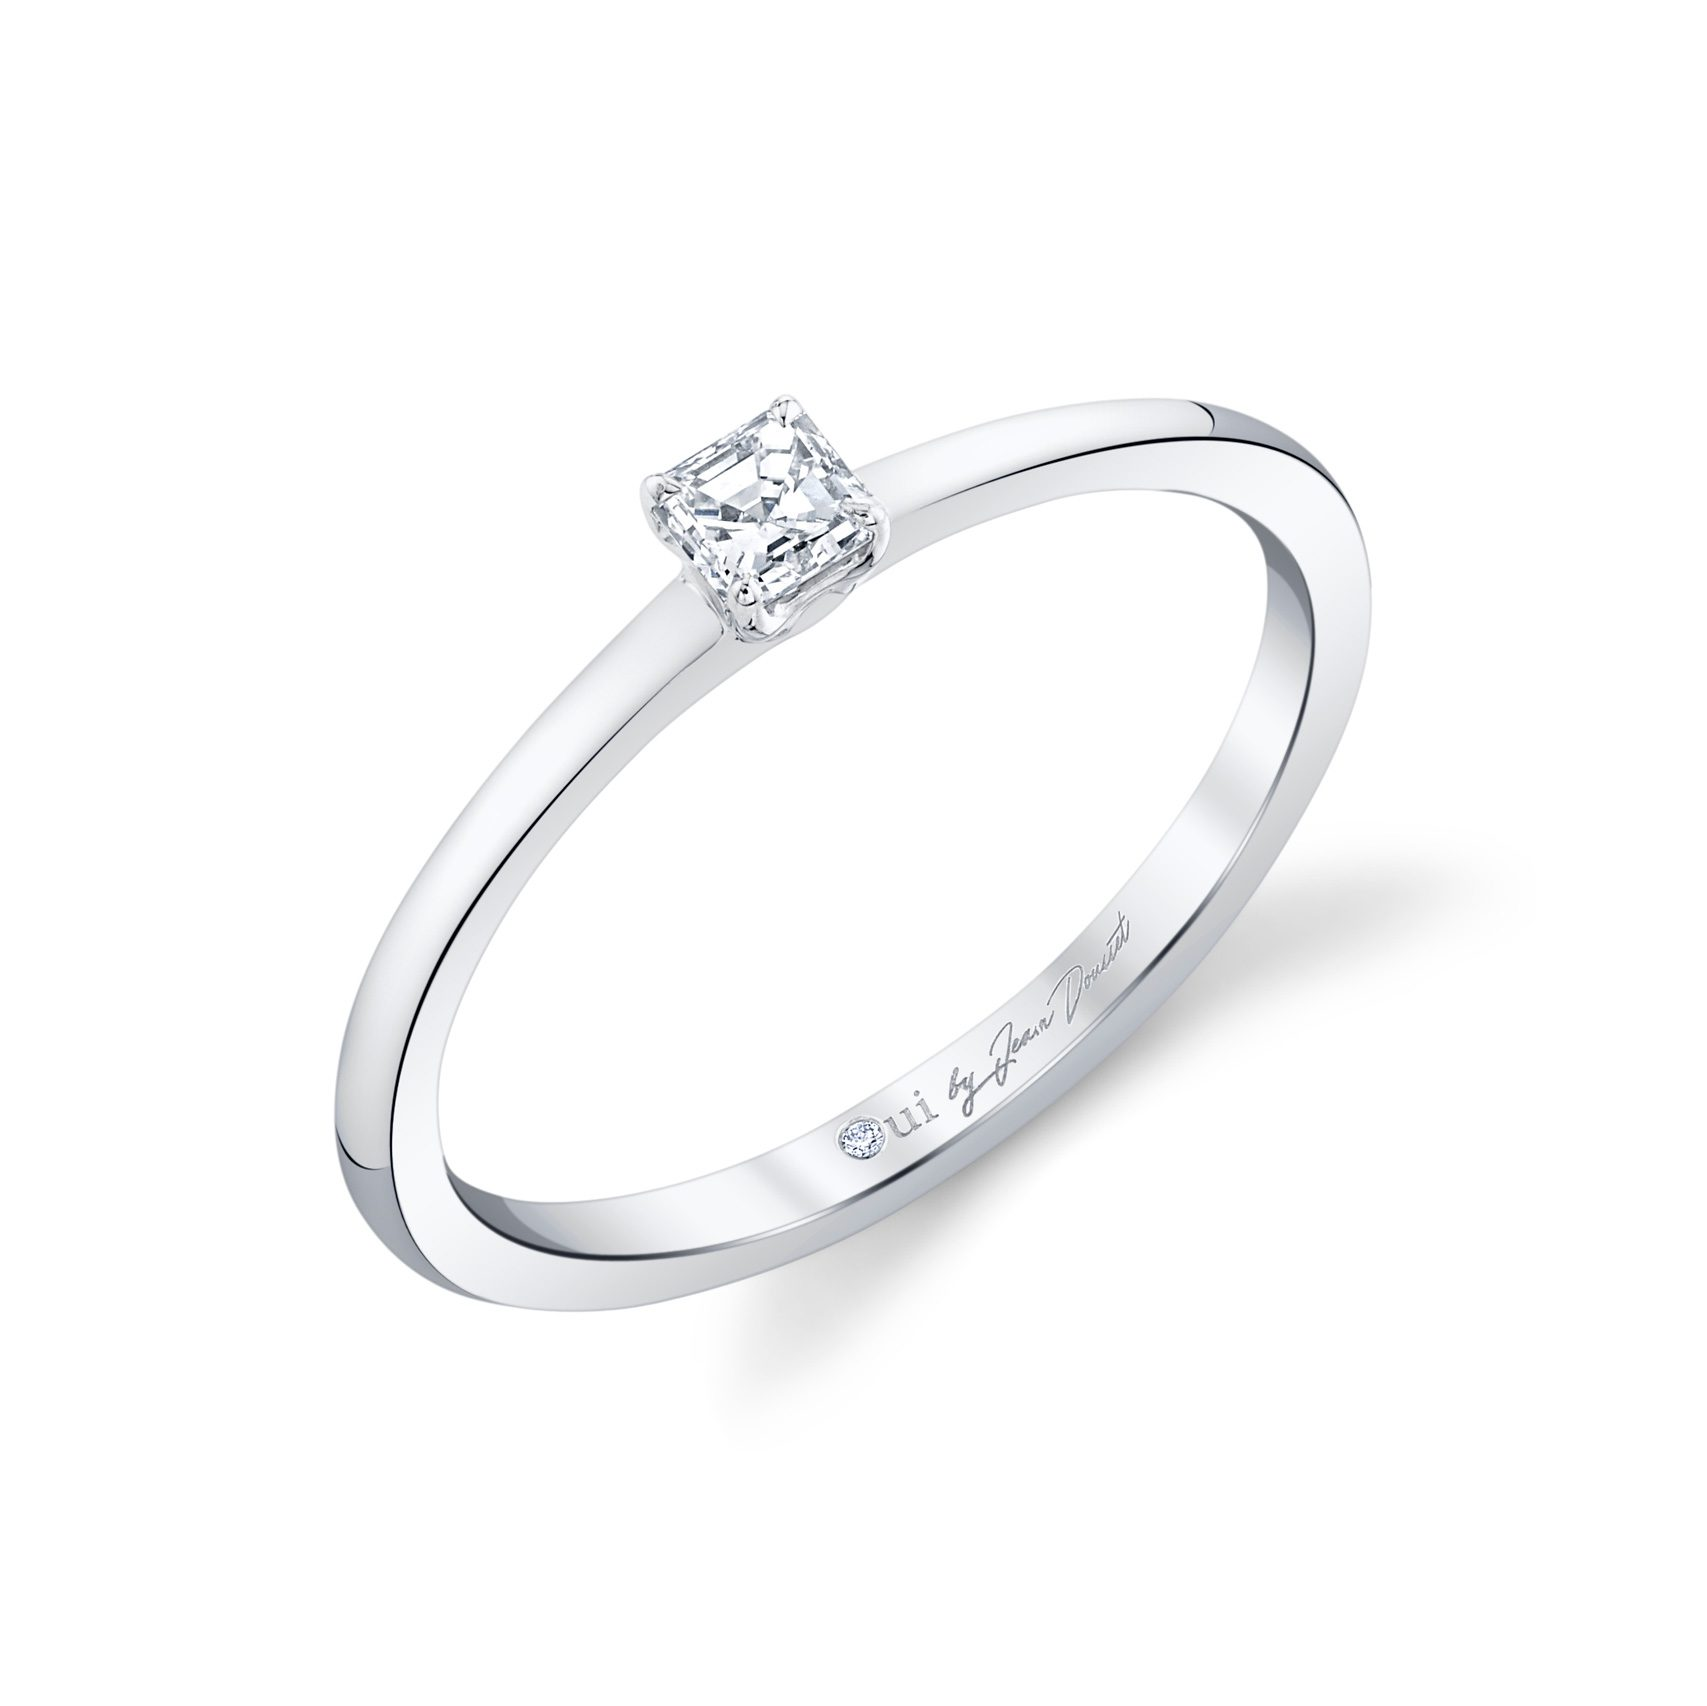 La Petite Asscher Diamond Wedding Band in 18k White Gold Standing View by Oui by Jean Dousset